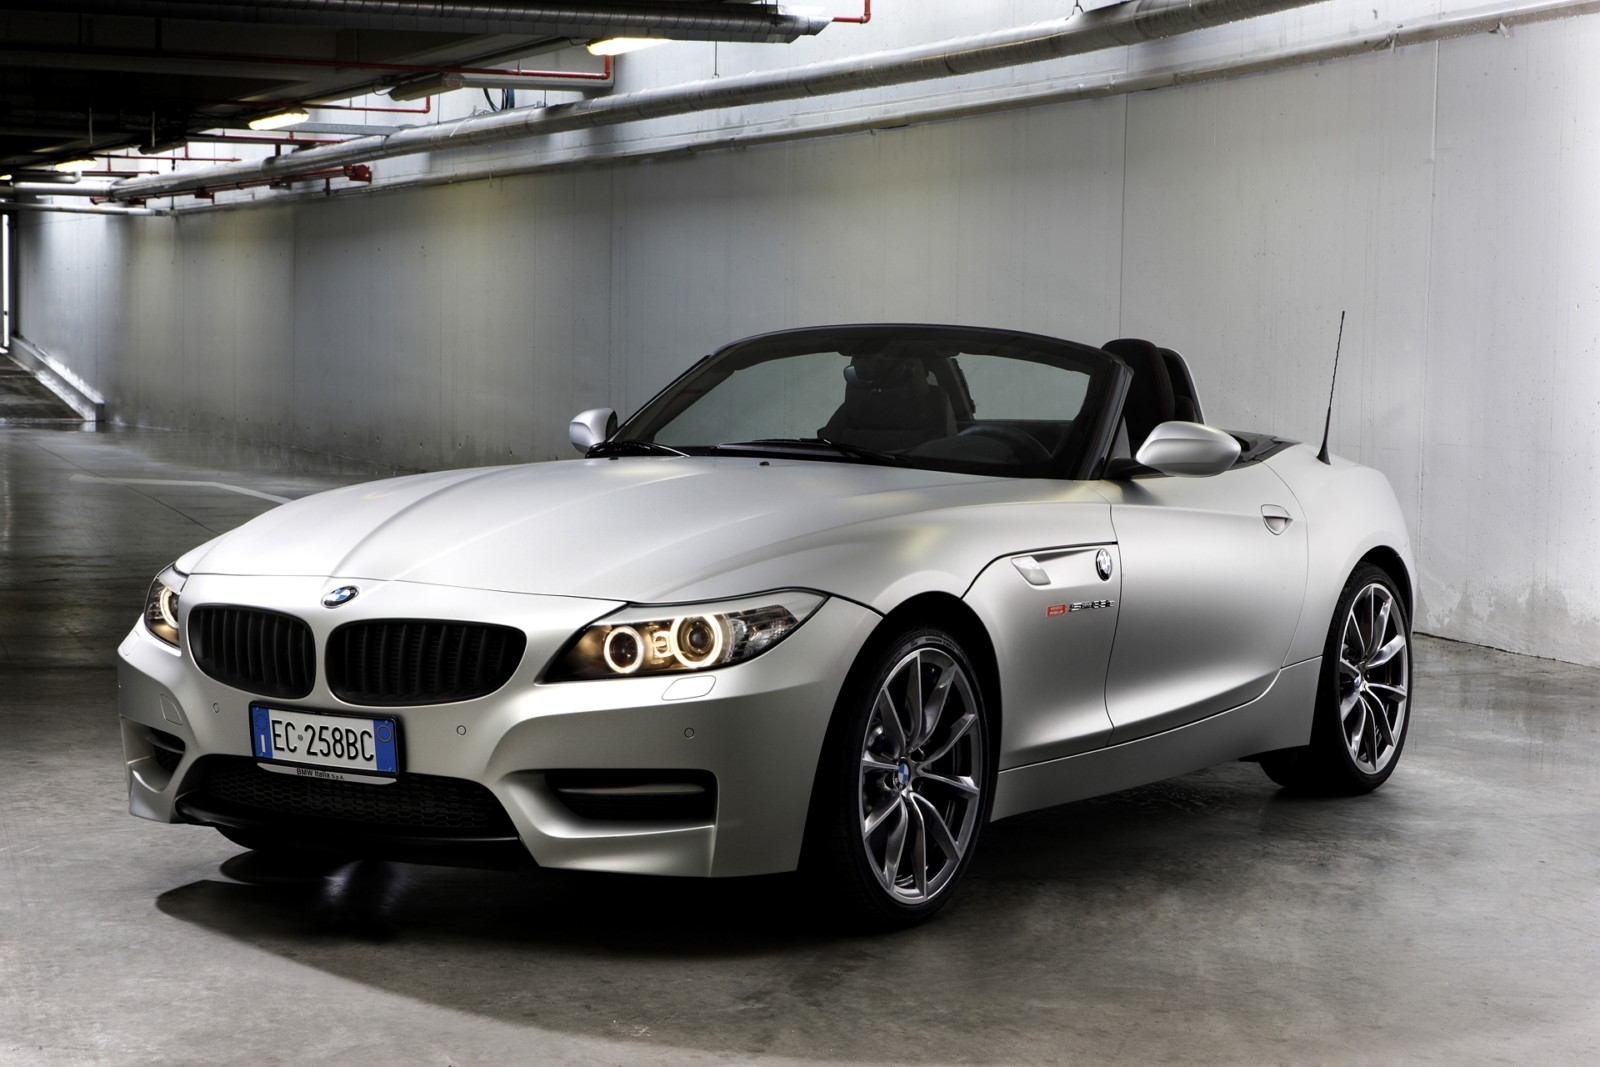 2010 Bmw Z4 Sdrive35is Mille Miglia Limited Edition Revealed